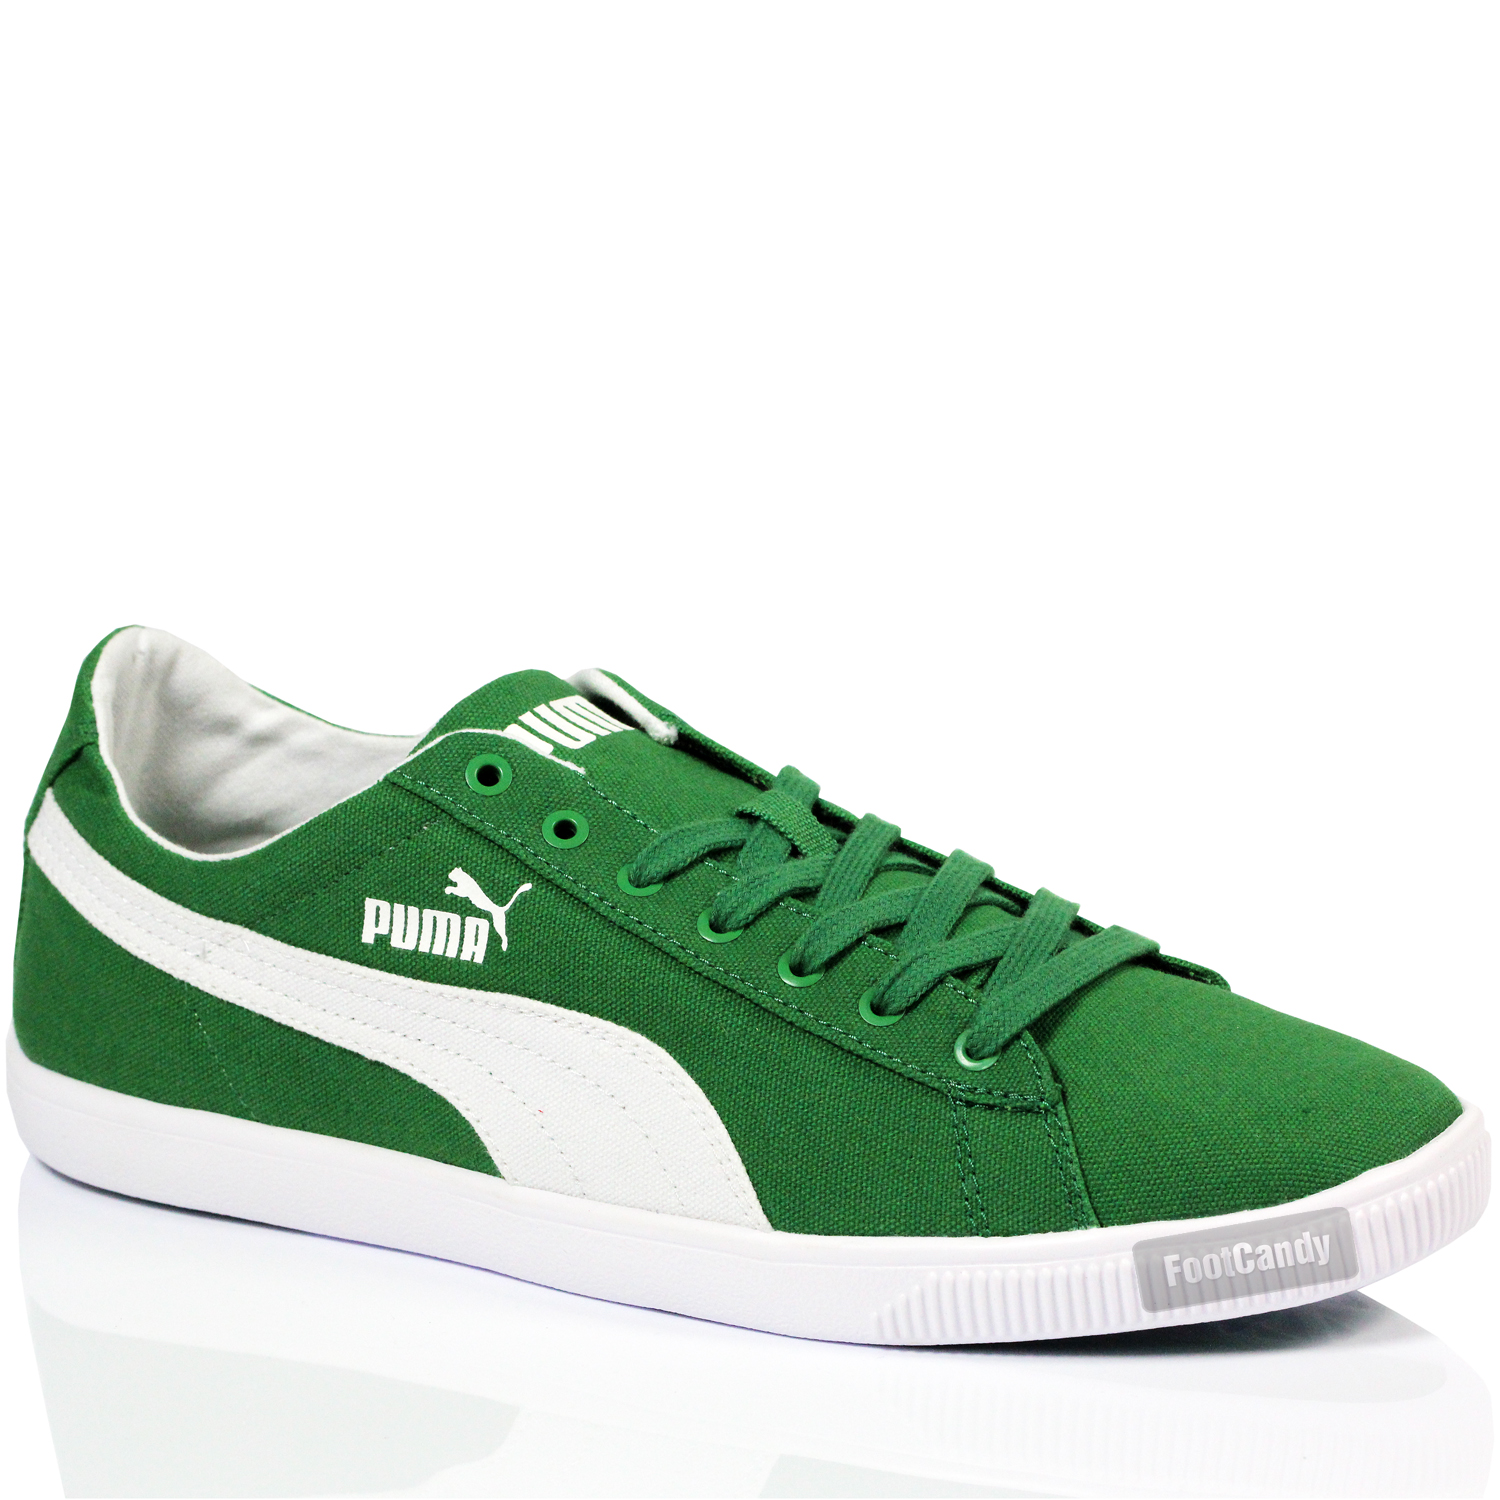 MENS BOYS PUMA GLYDE LITE LOW CANVAS LACE SPORTS SNEAKERS TRAINERS ... a81783962